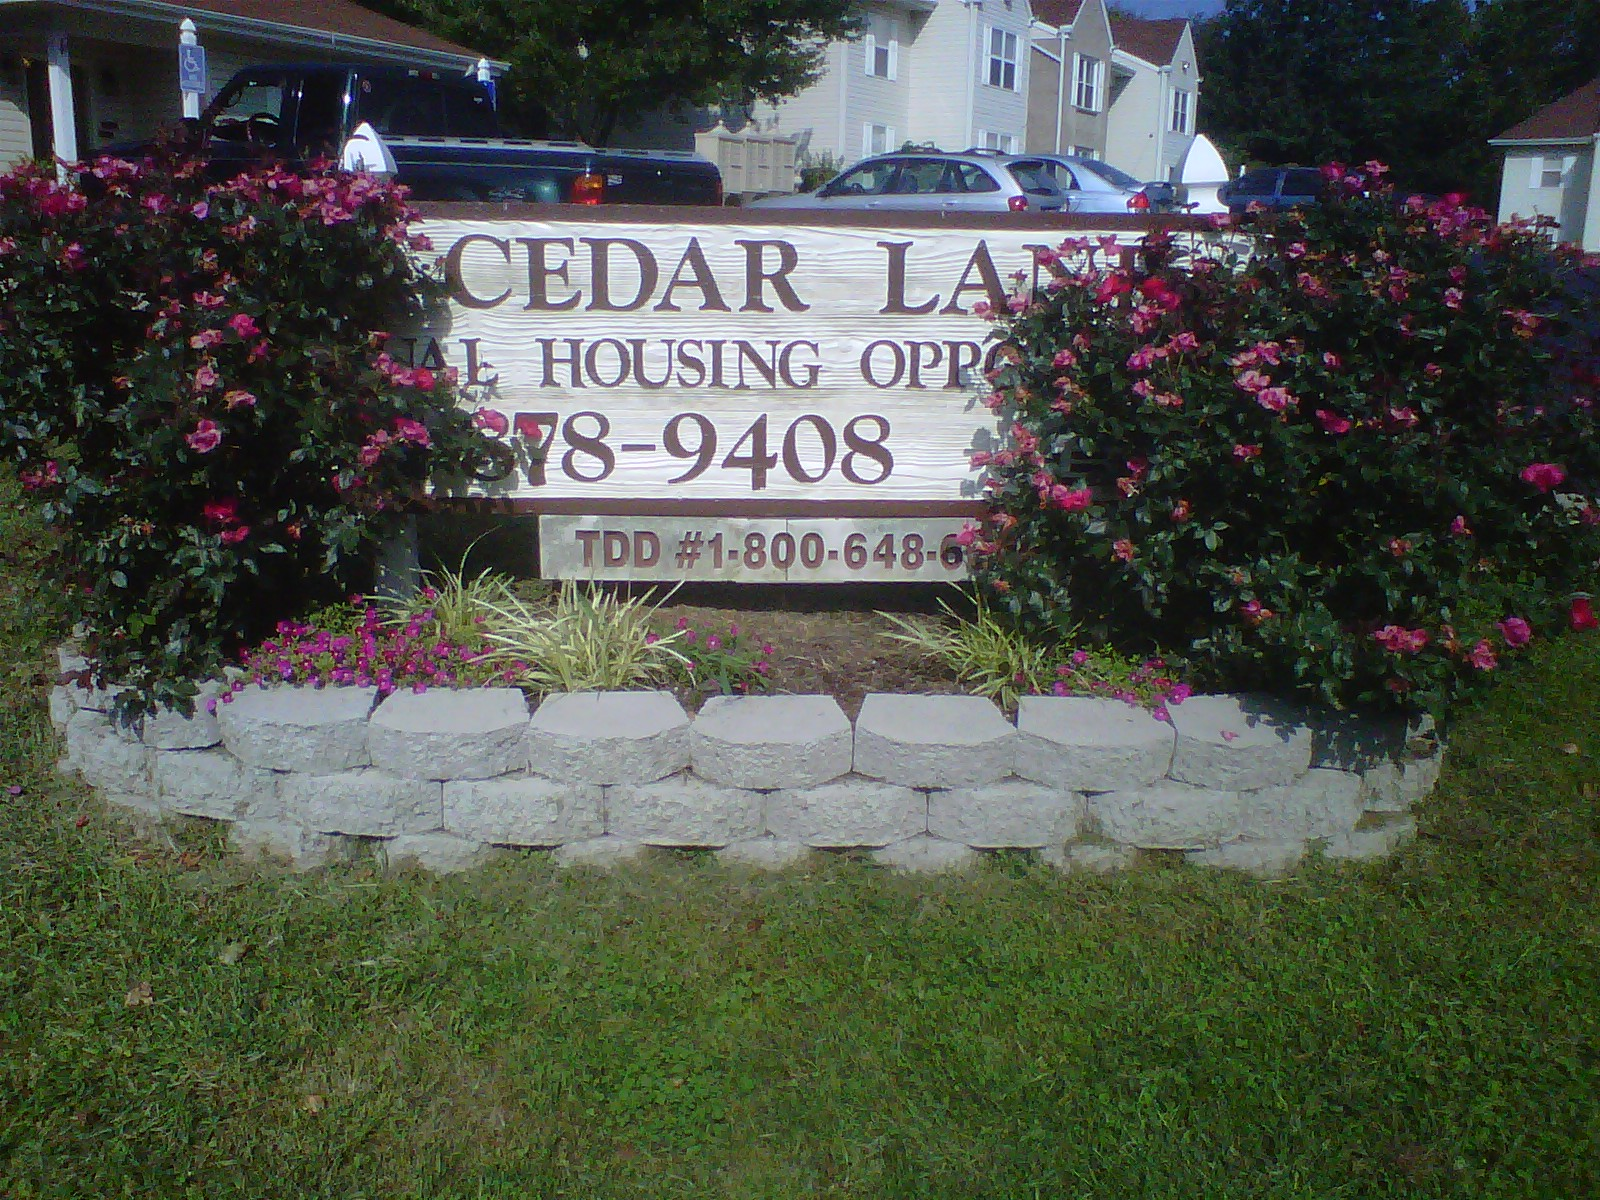 Image of Cedar Lane II Apartments